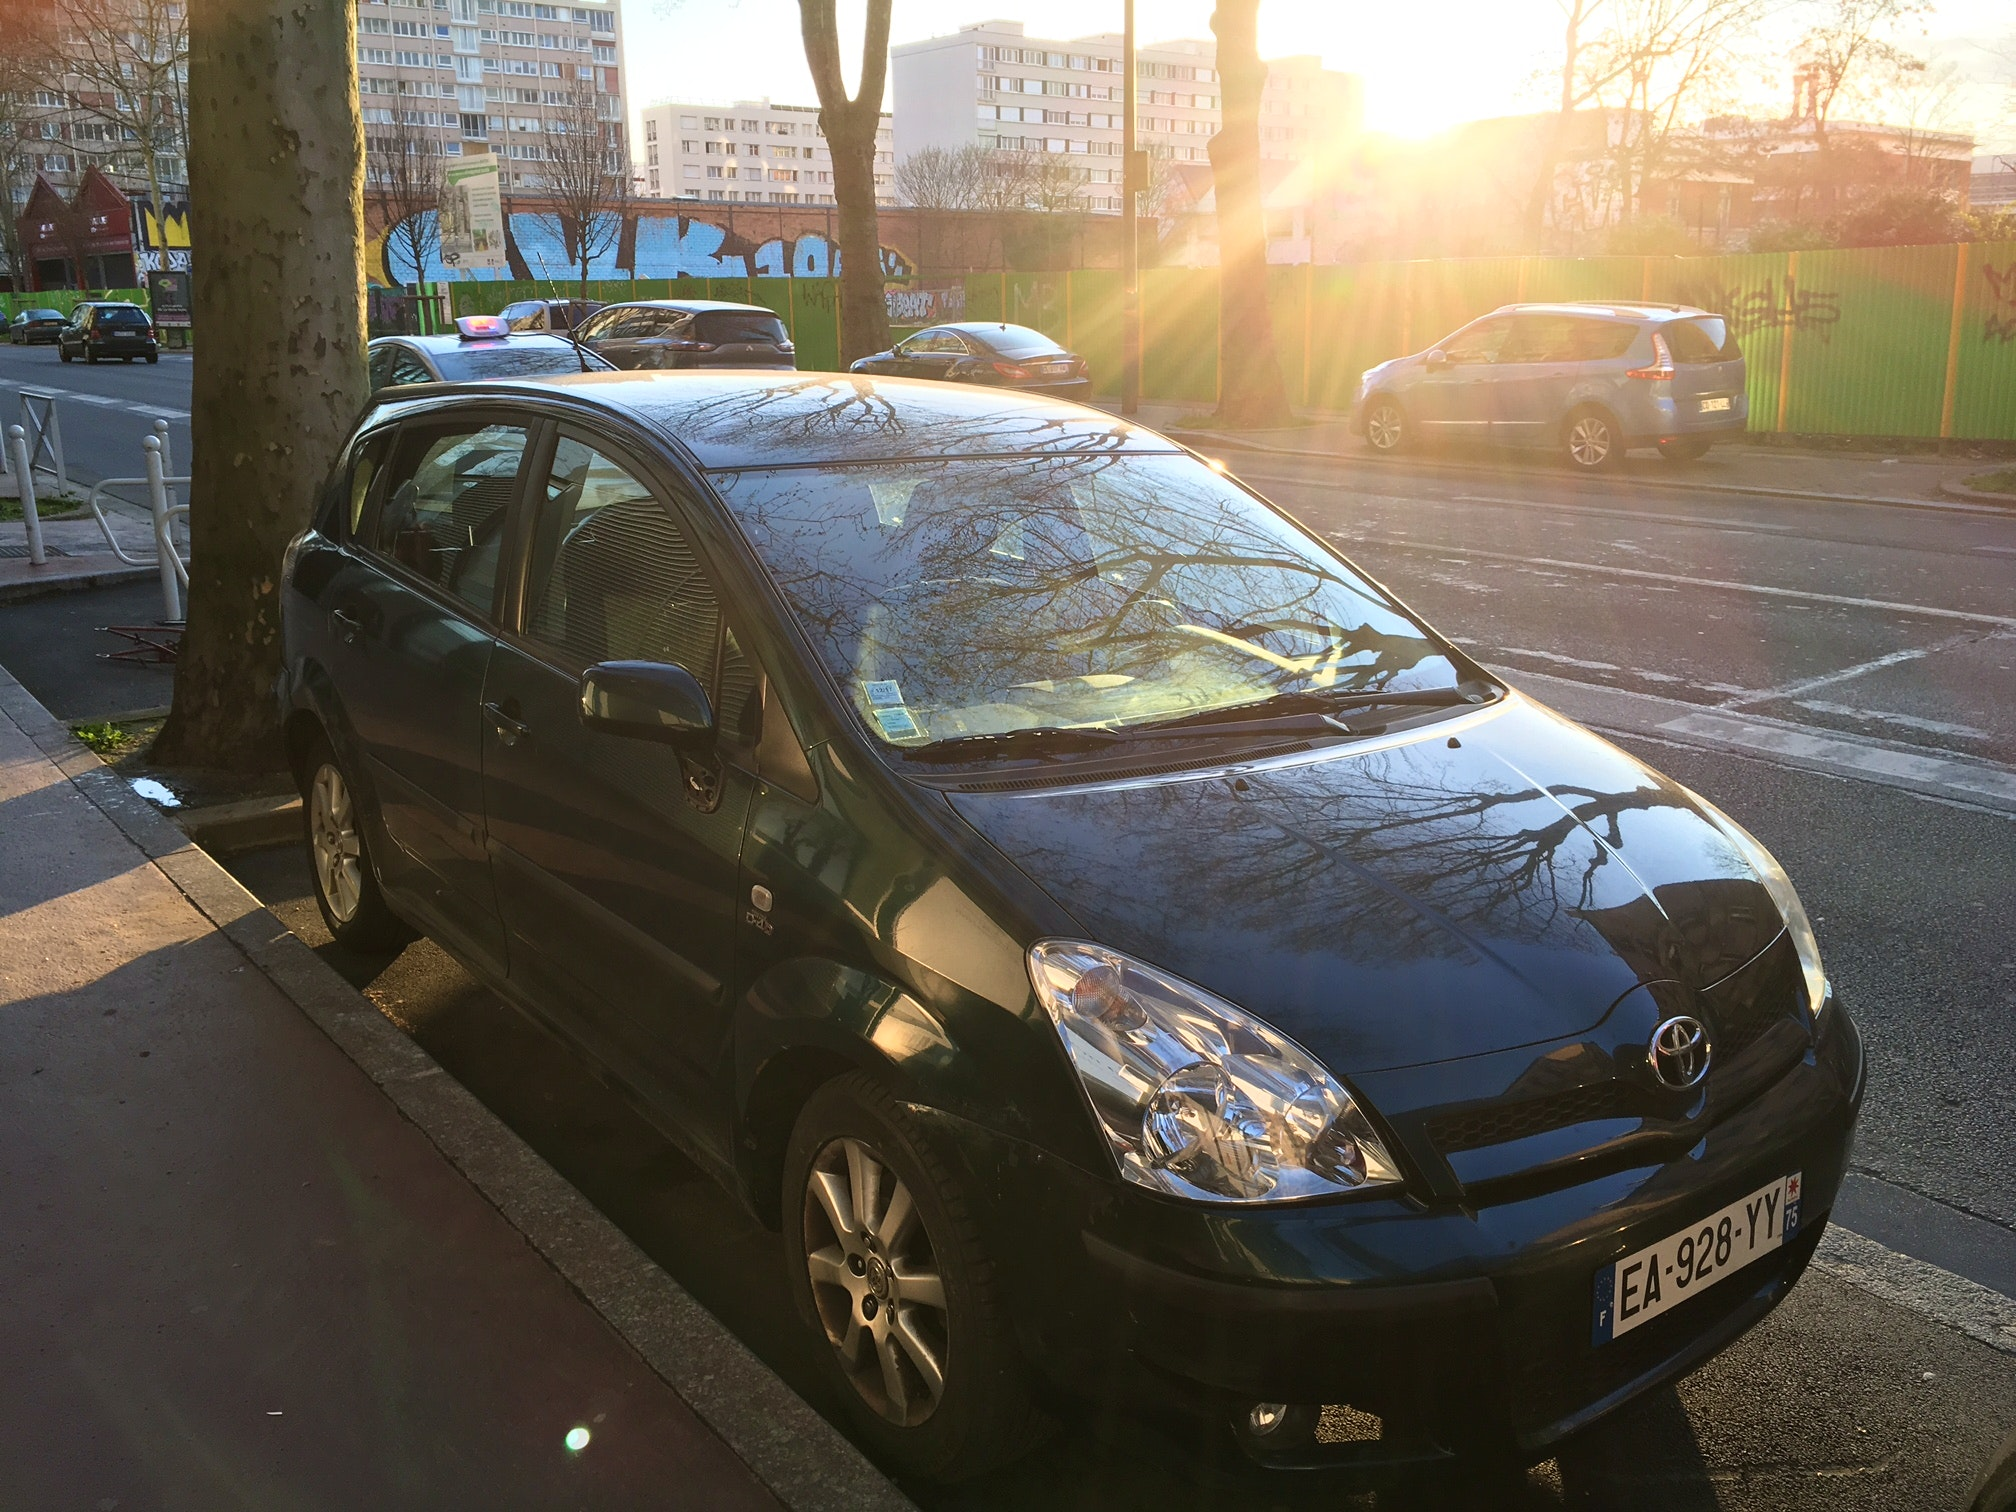 Toyota Corolla Verso 7 places, 2005, Diesel, 7 places